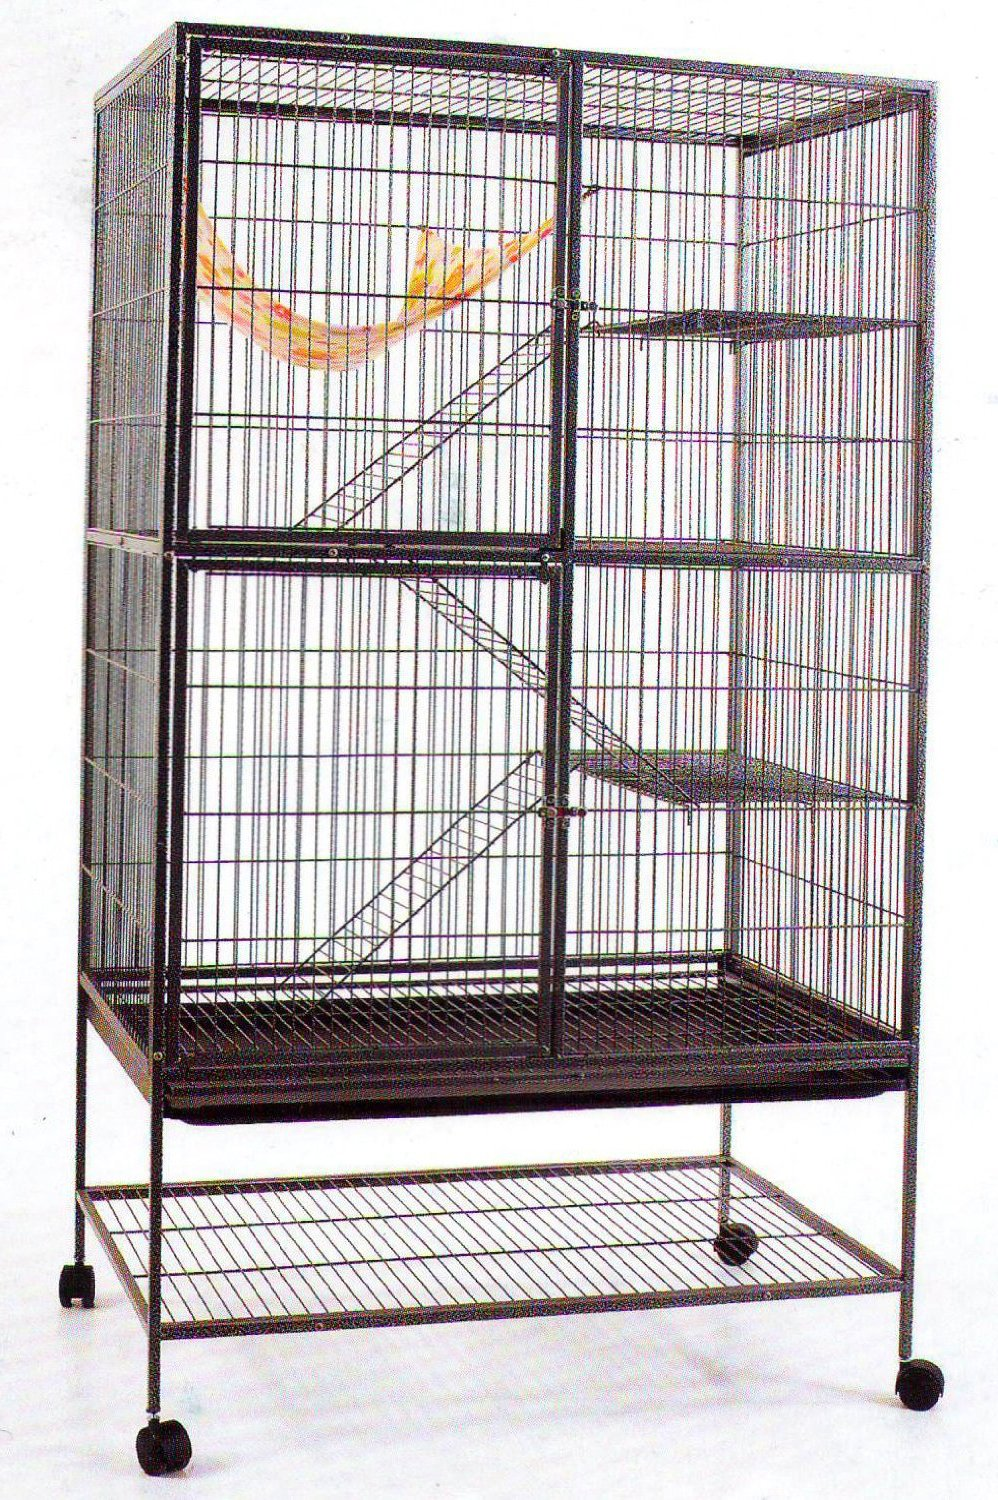 Extra Large 4 Level With Large Double Front Doors For Feisty Ferret Chinchilla Rat Small Animal Wrought Iron Cage With Stand, 1/2 Bar Spacing,Black Vein